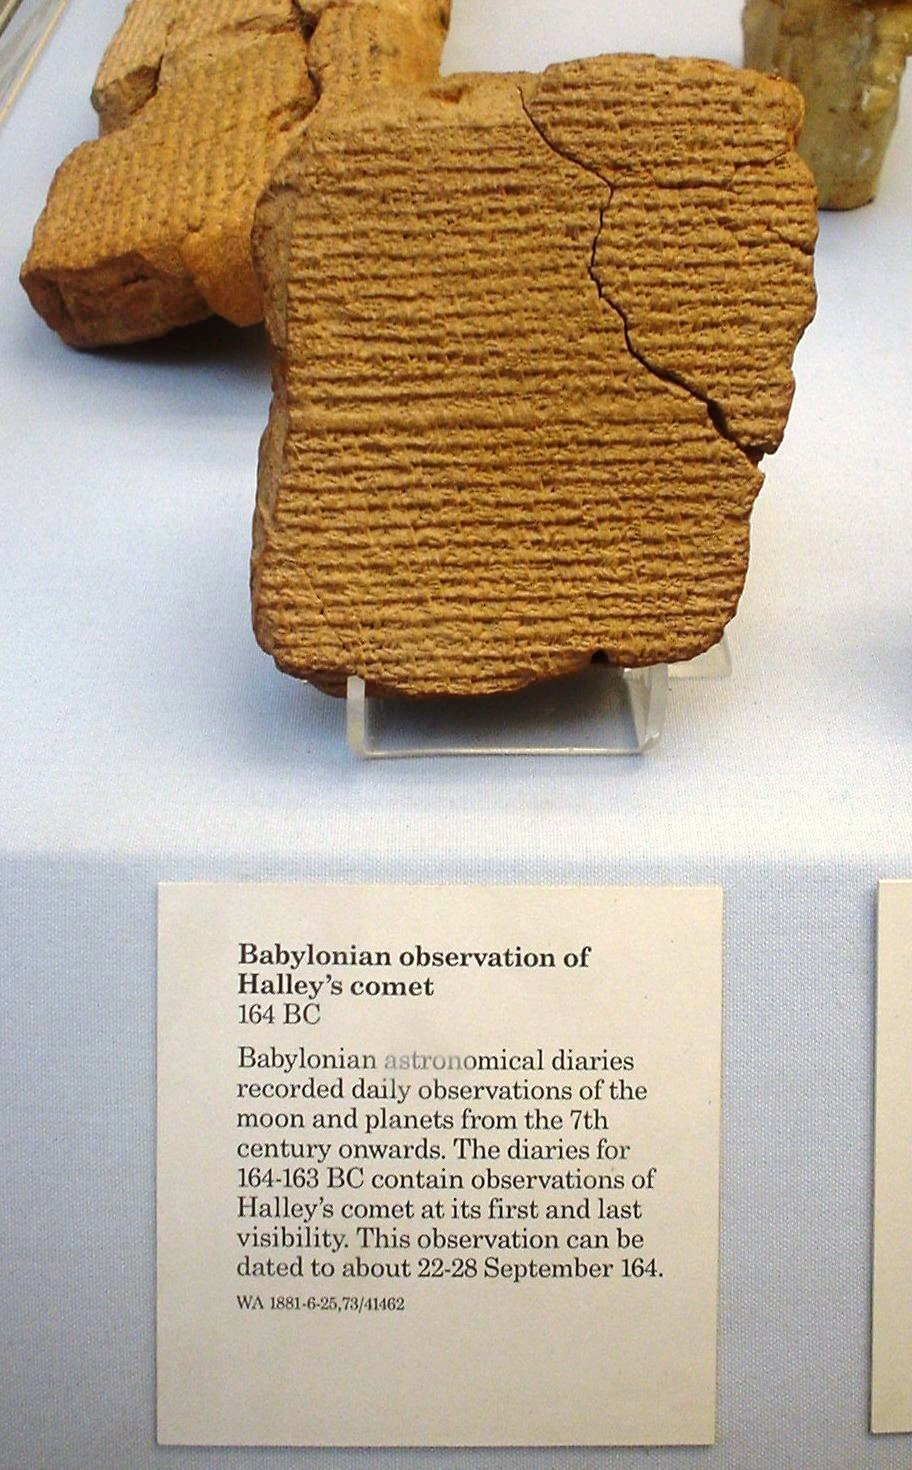 Babylonian tablet recording Halley's comet